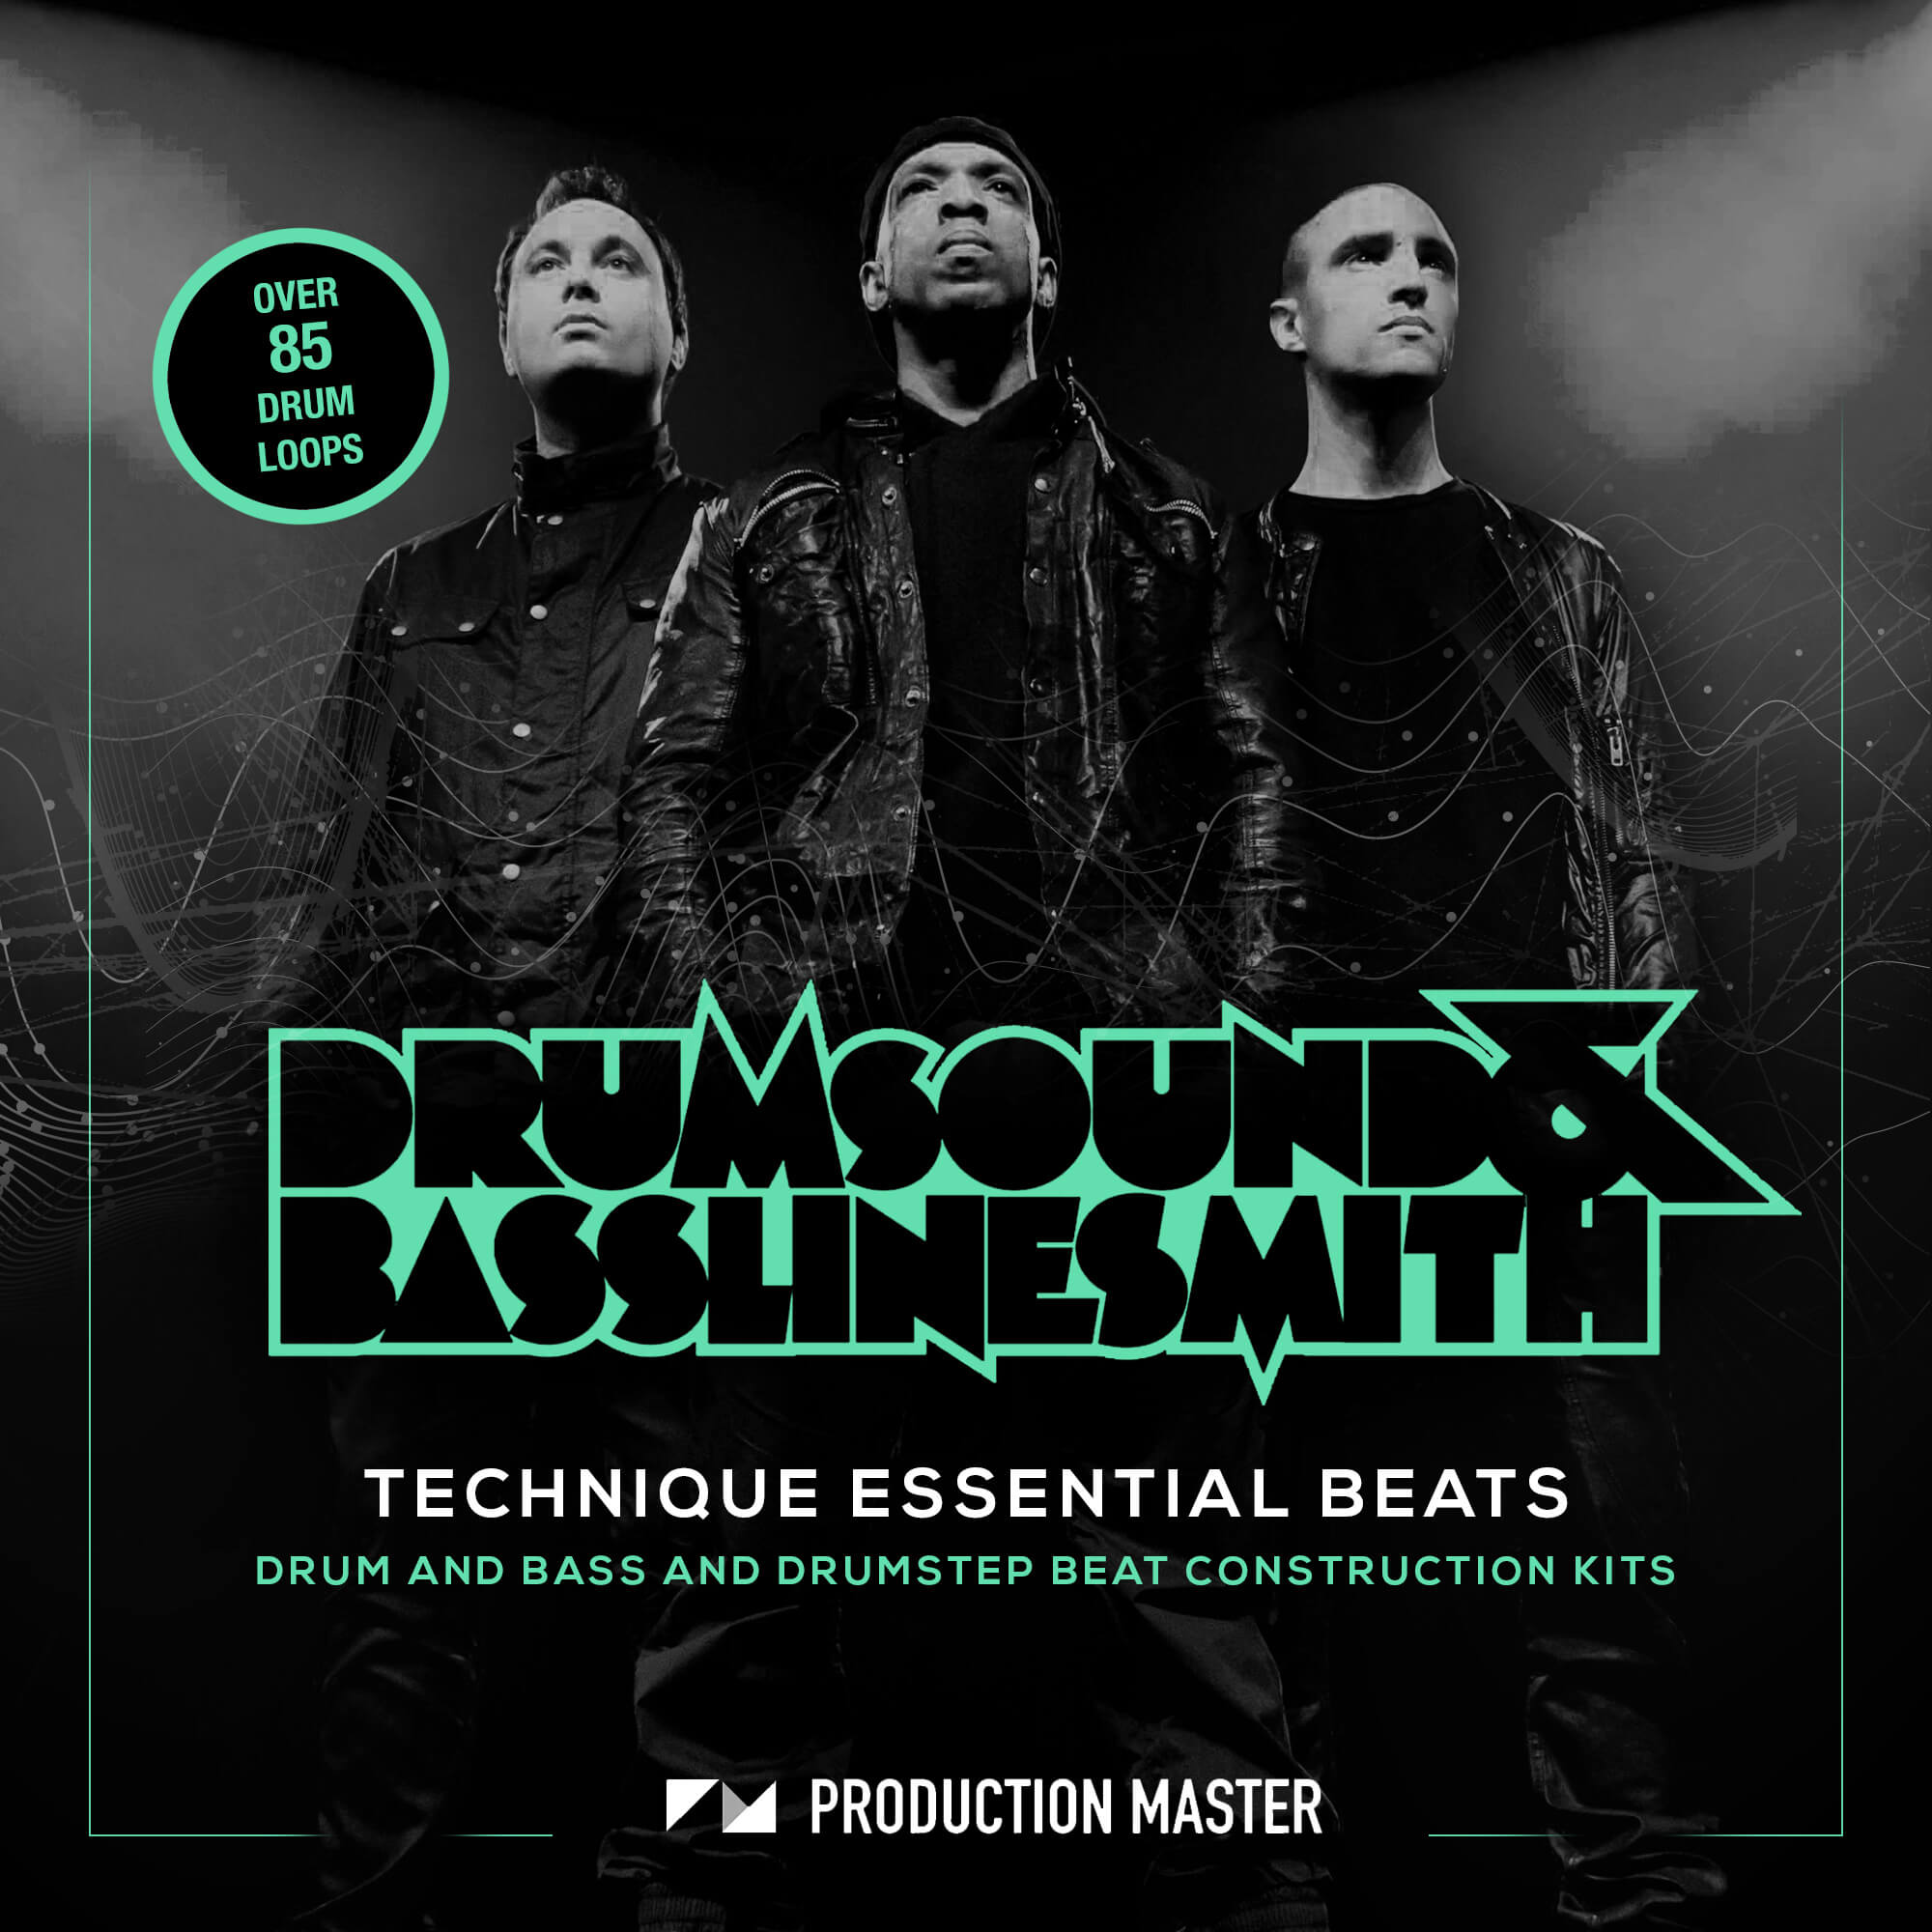 Drumsound and Bassline Smith Technique Essential Beats